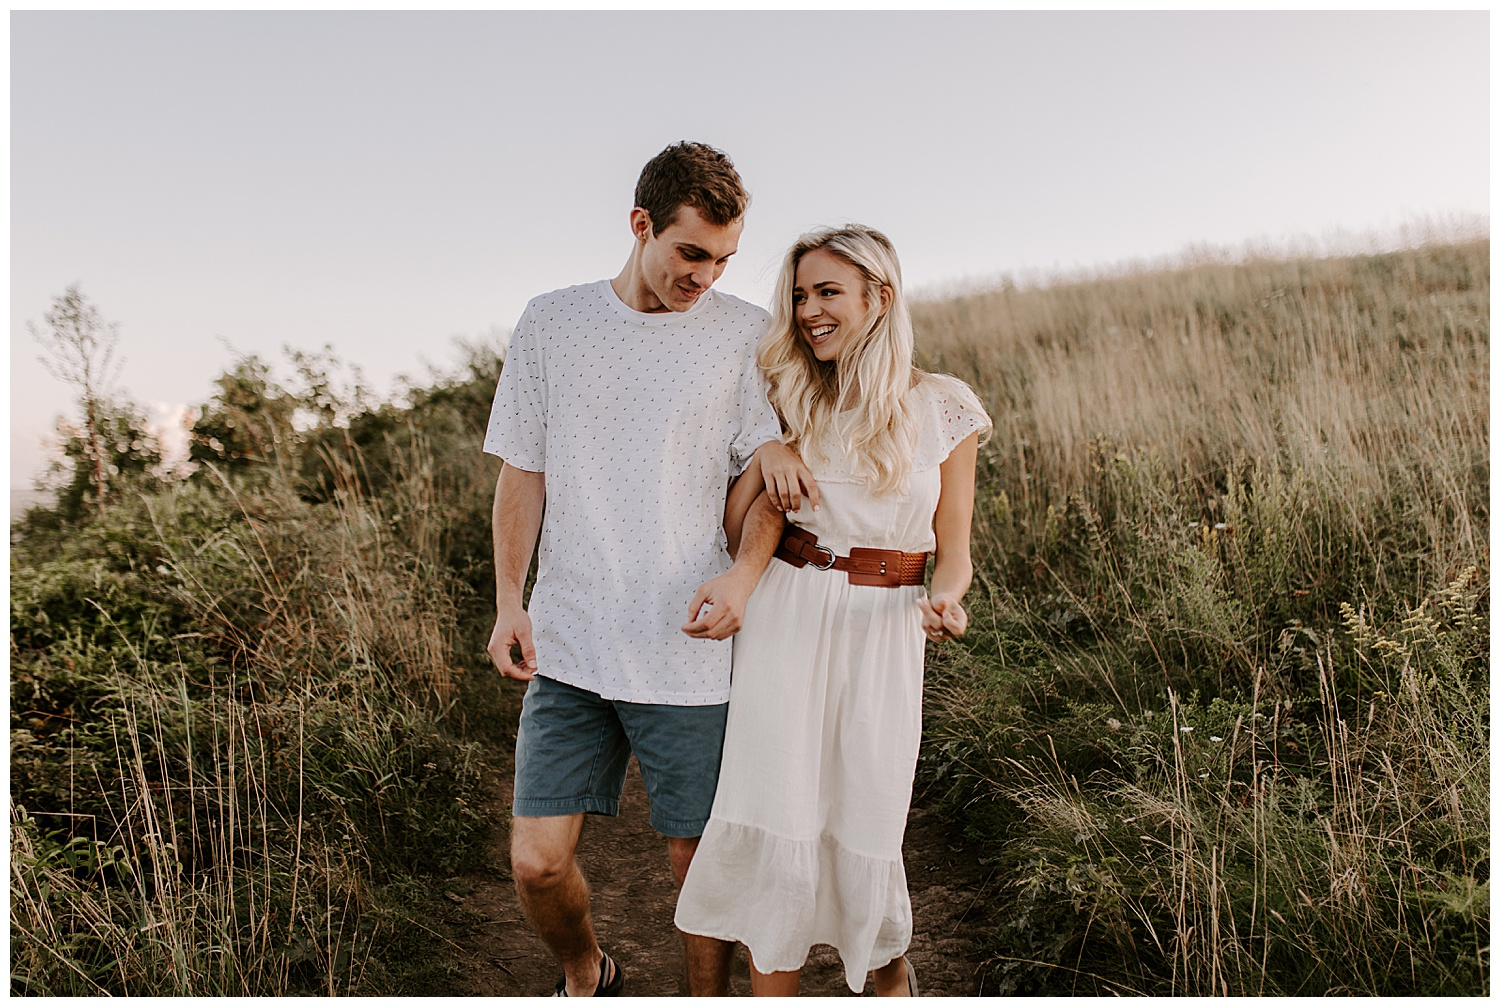 HANNAH_NICK_MAXPATCH_ENGAGEMENT2019-09-05_0010.jpg